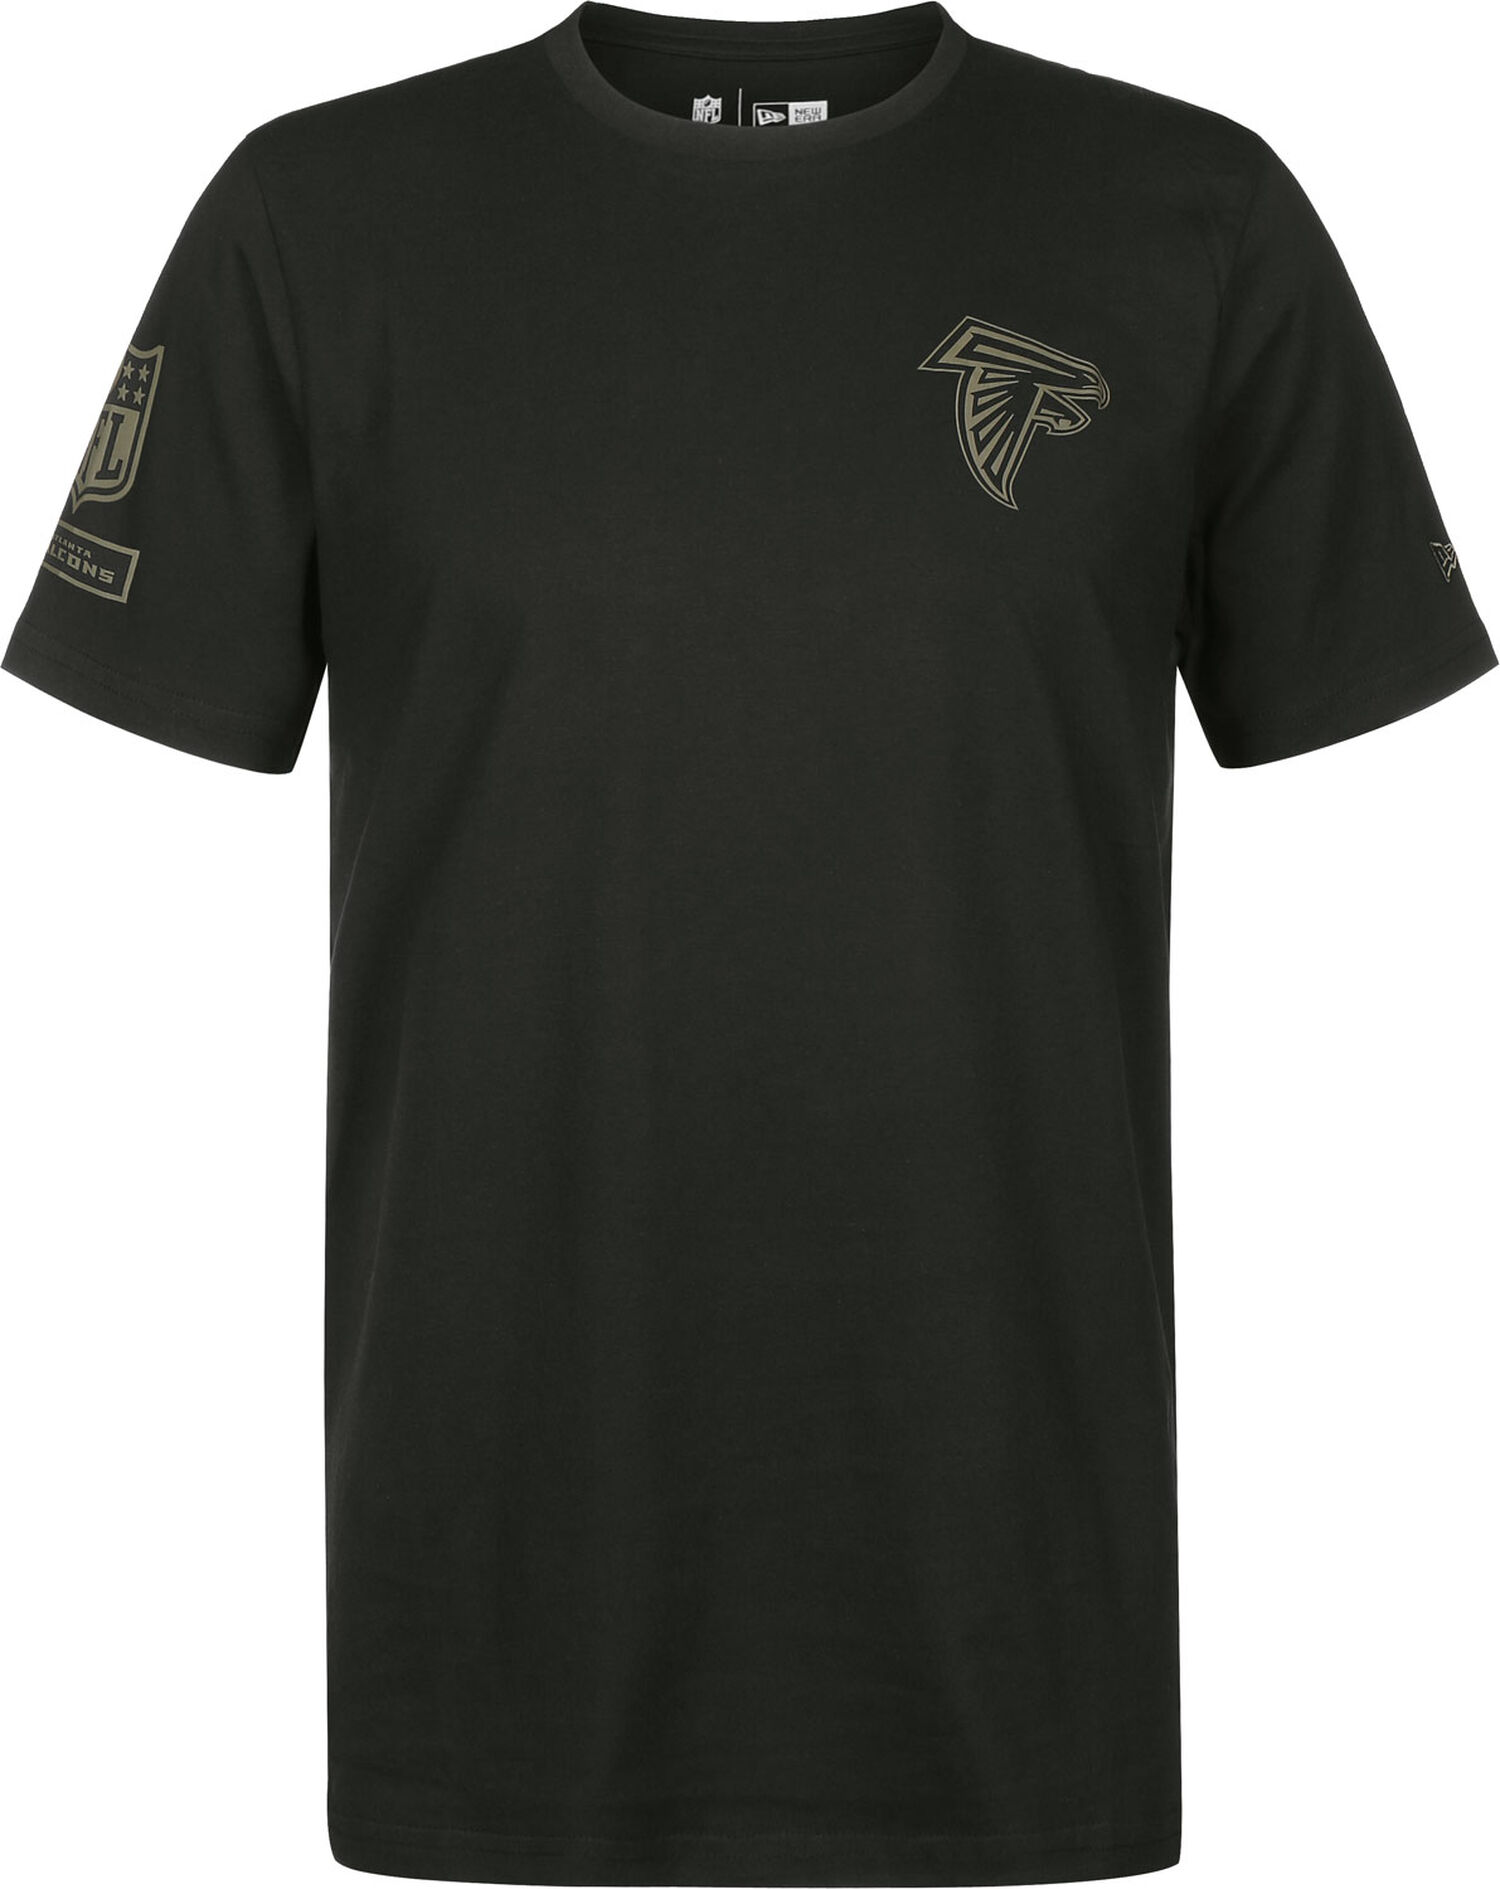 NFL Camo Atlanta Falcons